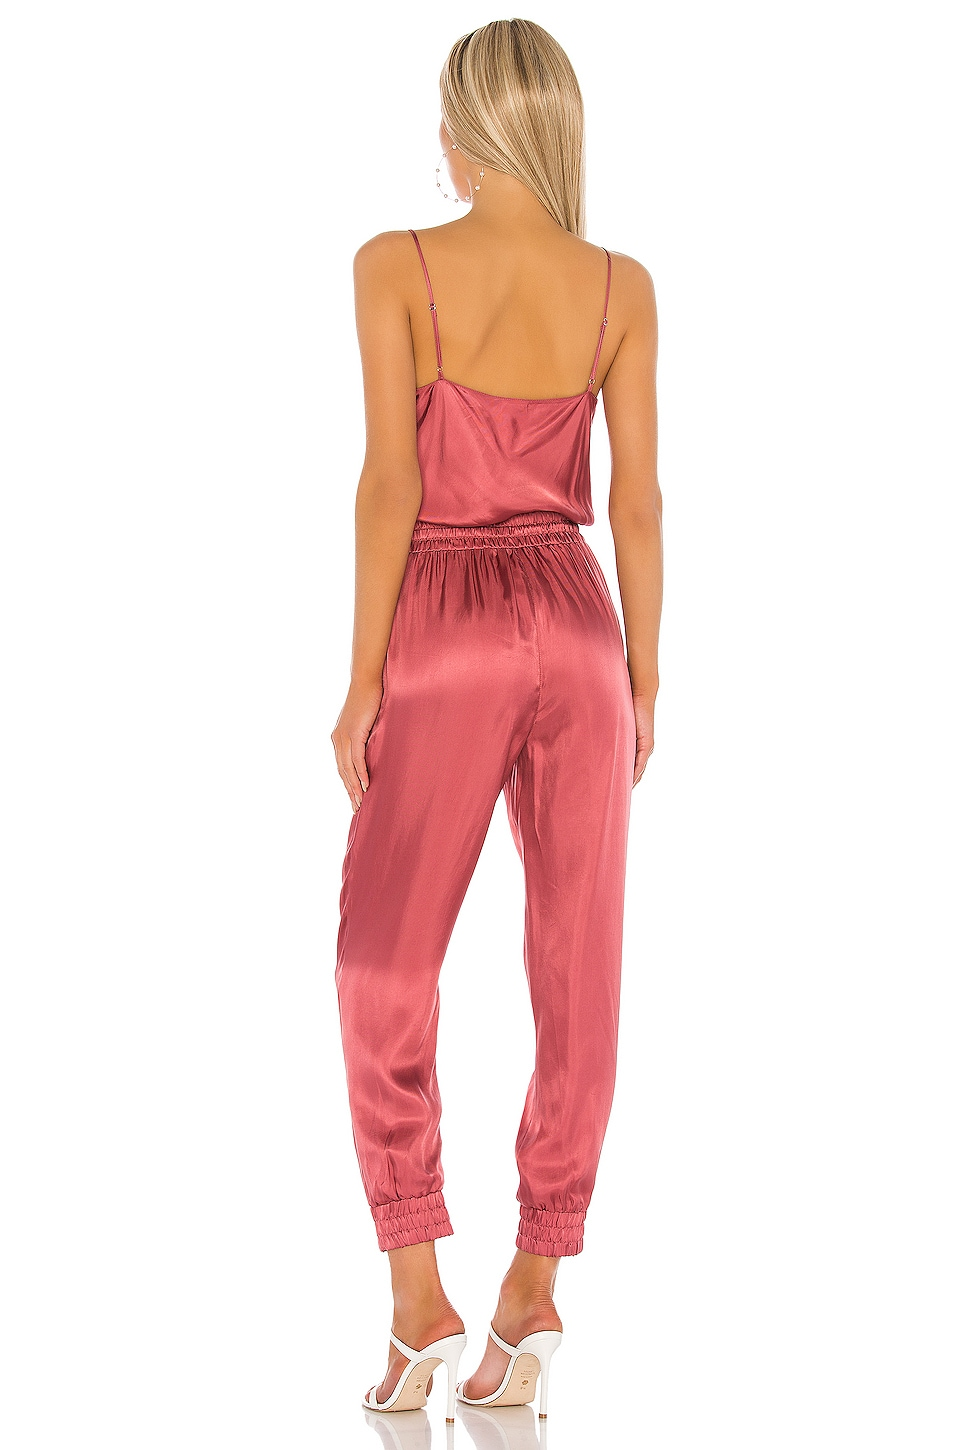 Finnley Jumpsuit, view 3, click to view large image.